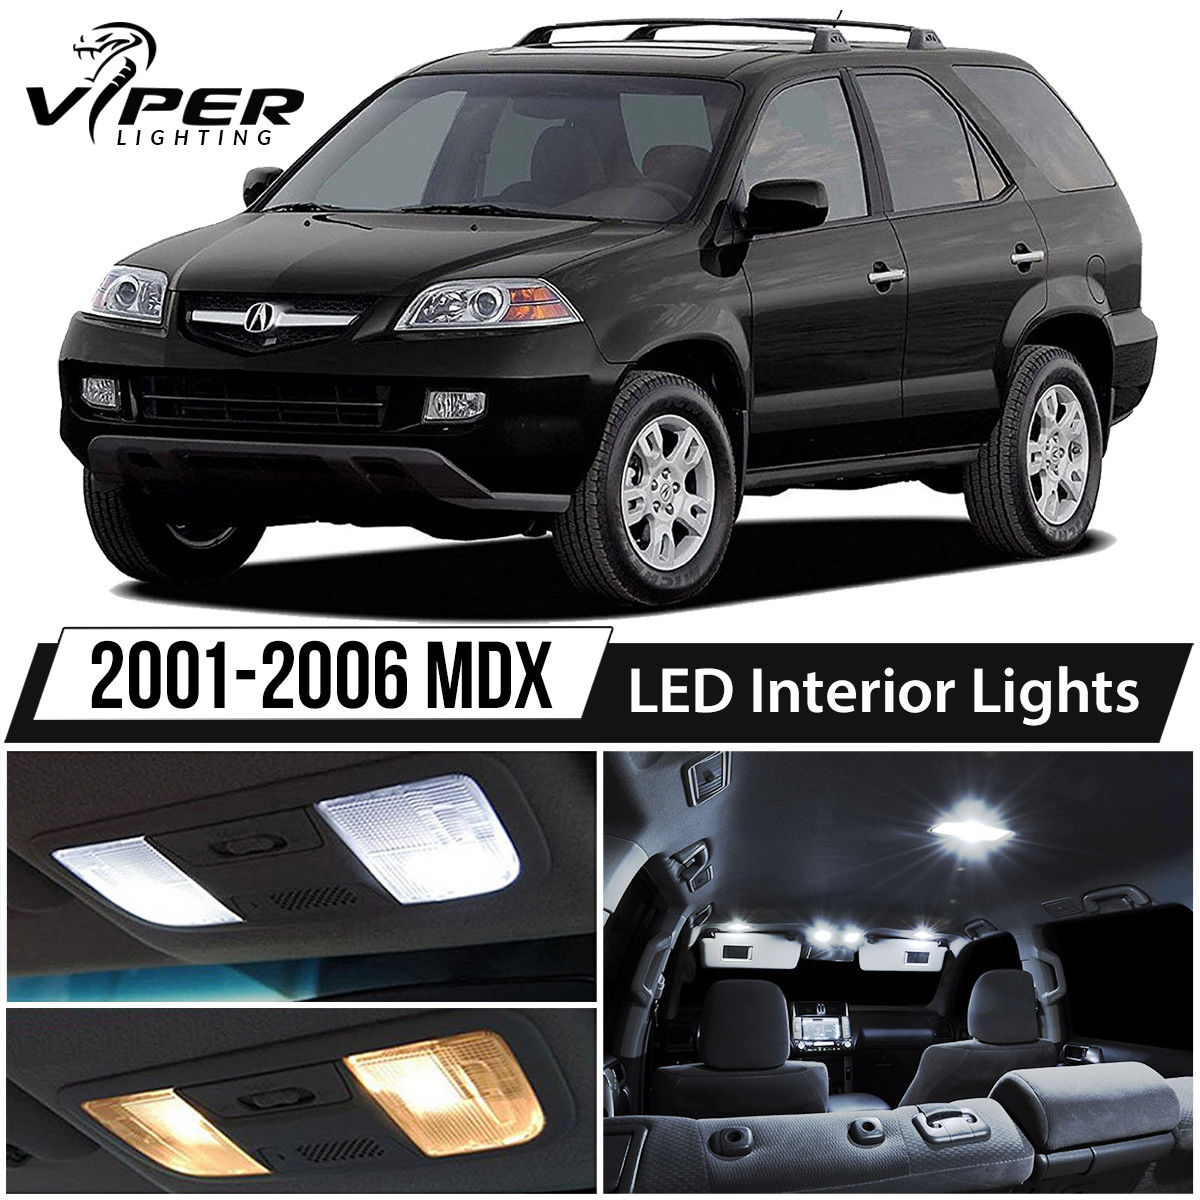 Awesome 2001-2006 Acura MDX White LED Interior Lights Kit